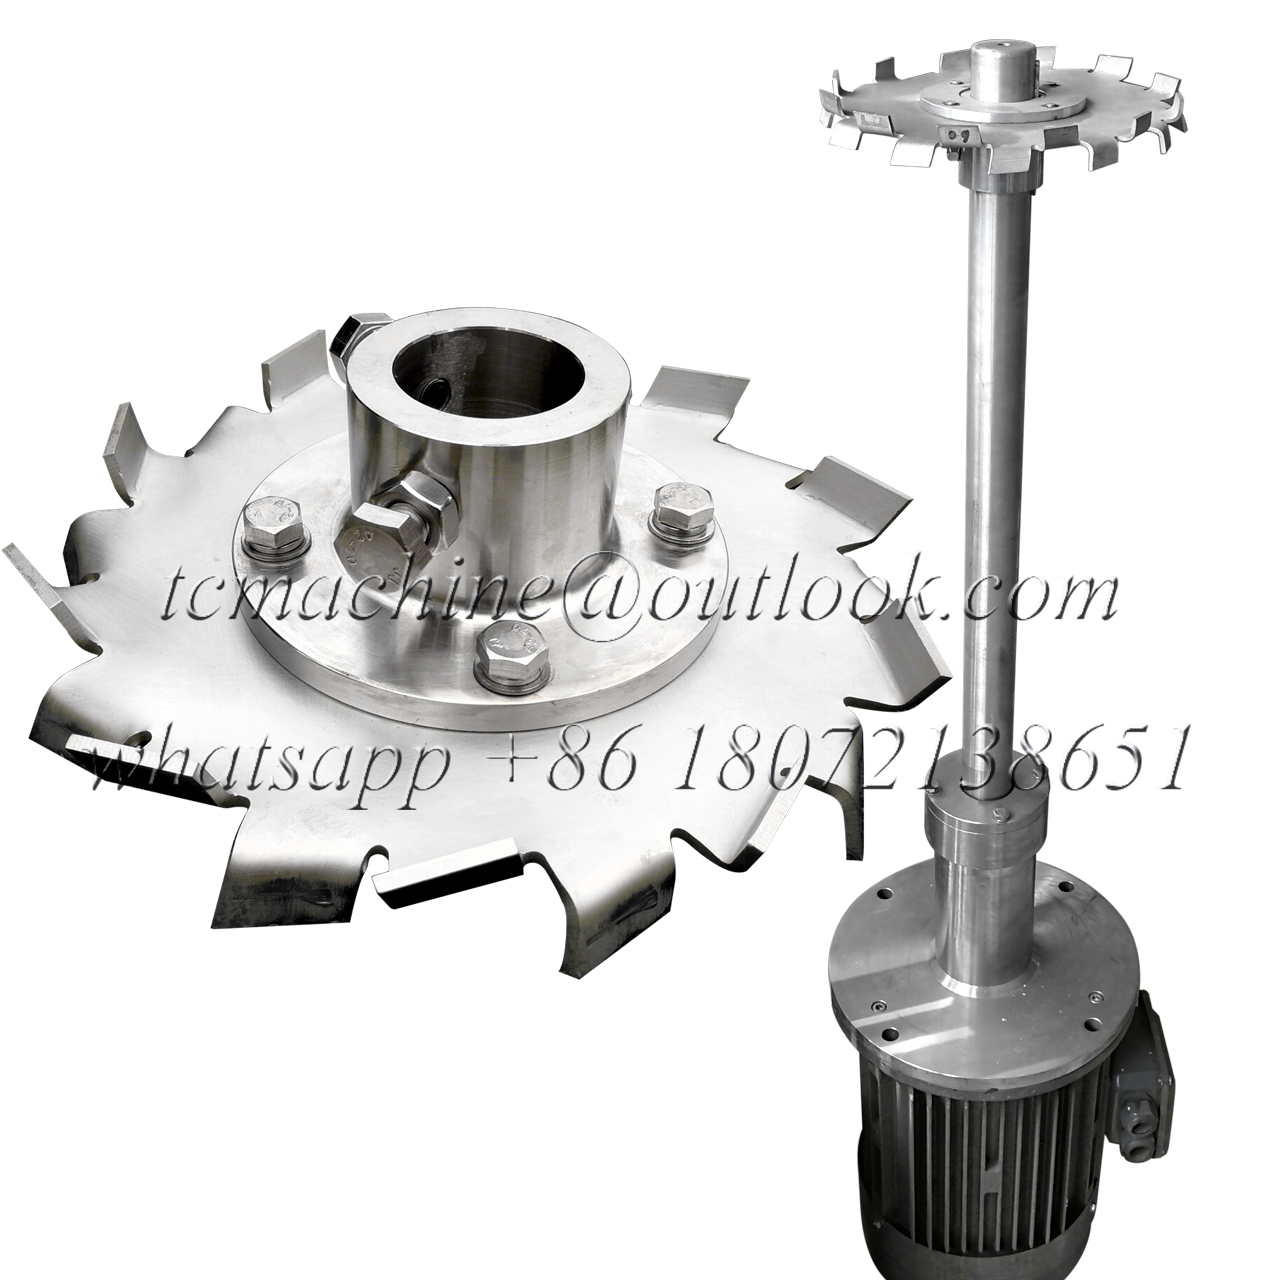 High Shear Dispersor Stainless Steel Cowles Disc Sawblade Mixer Sawtooth Impeller